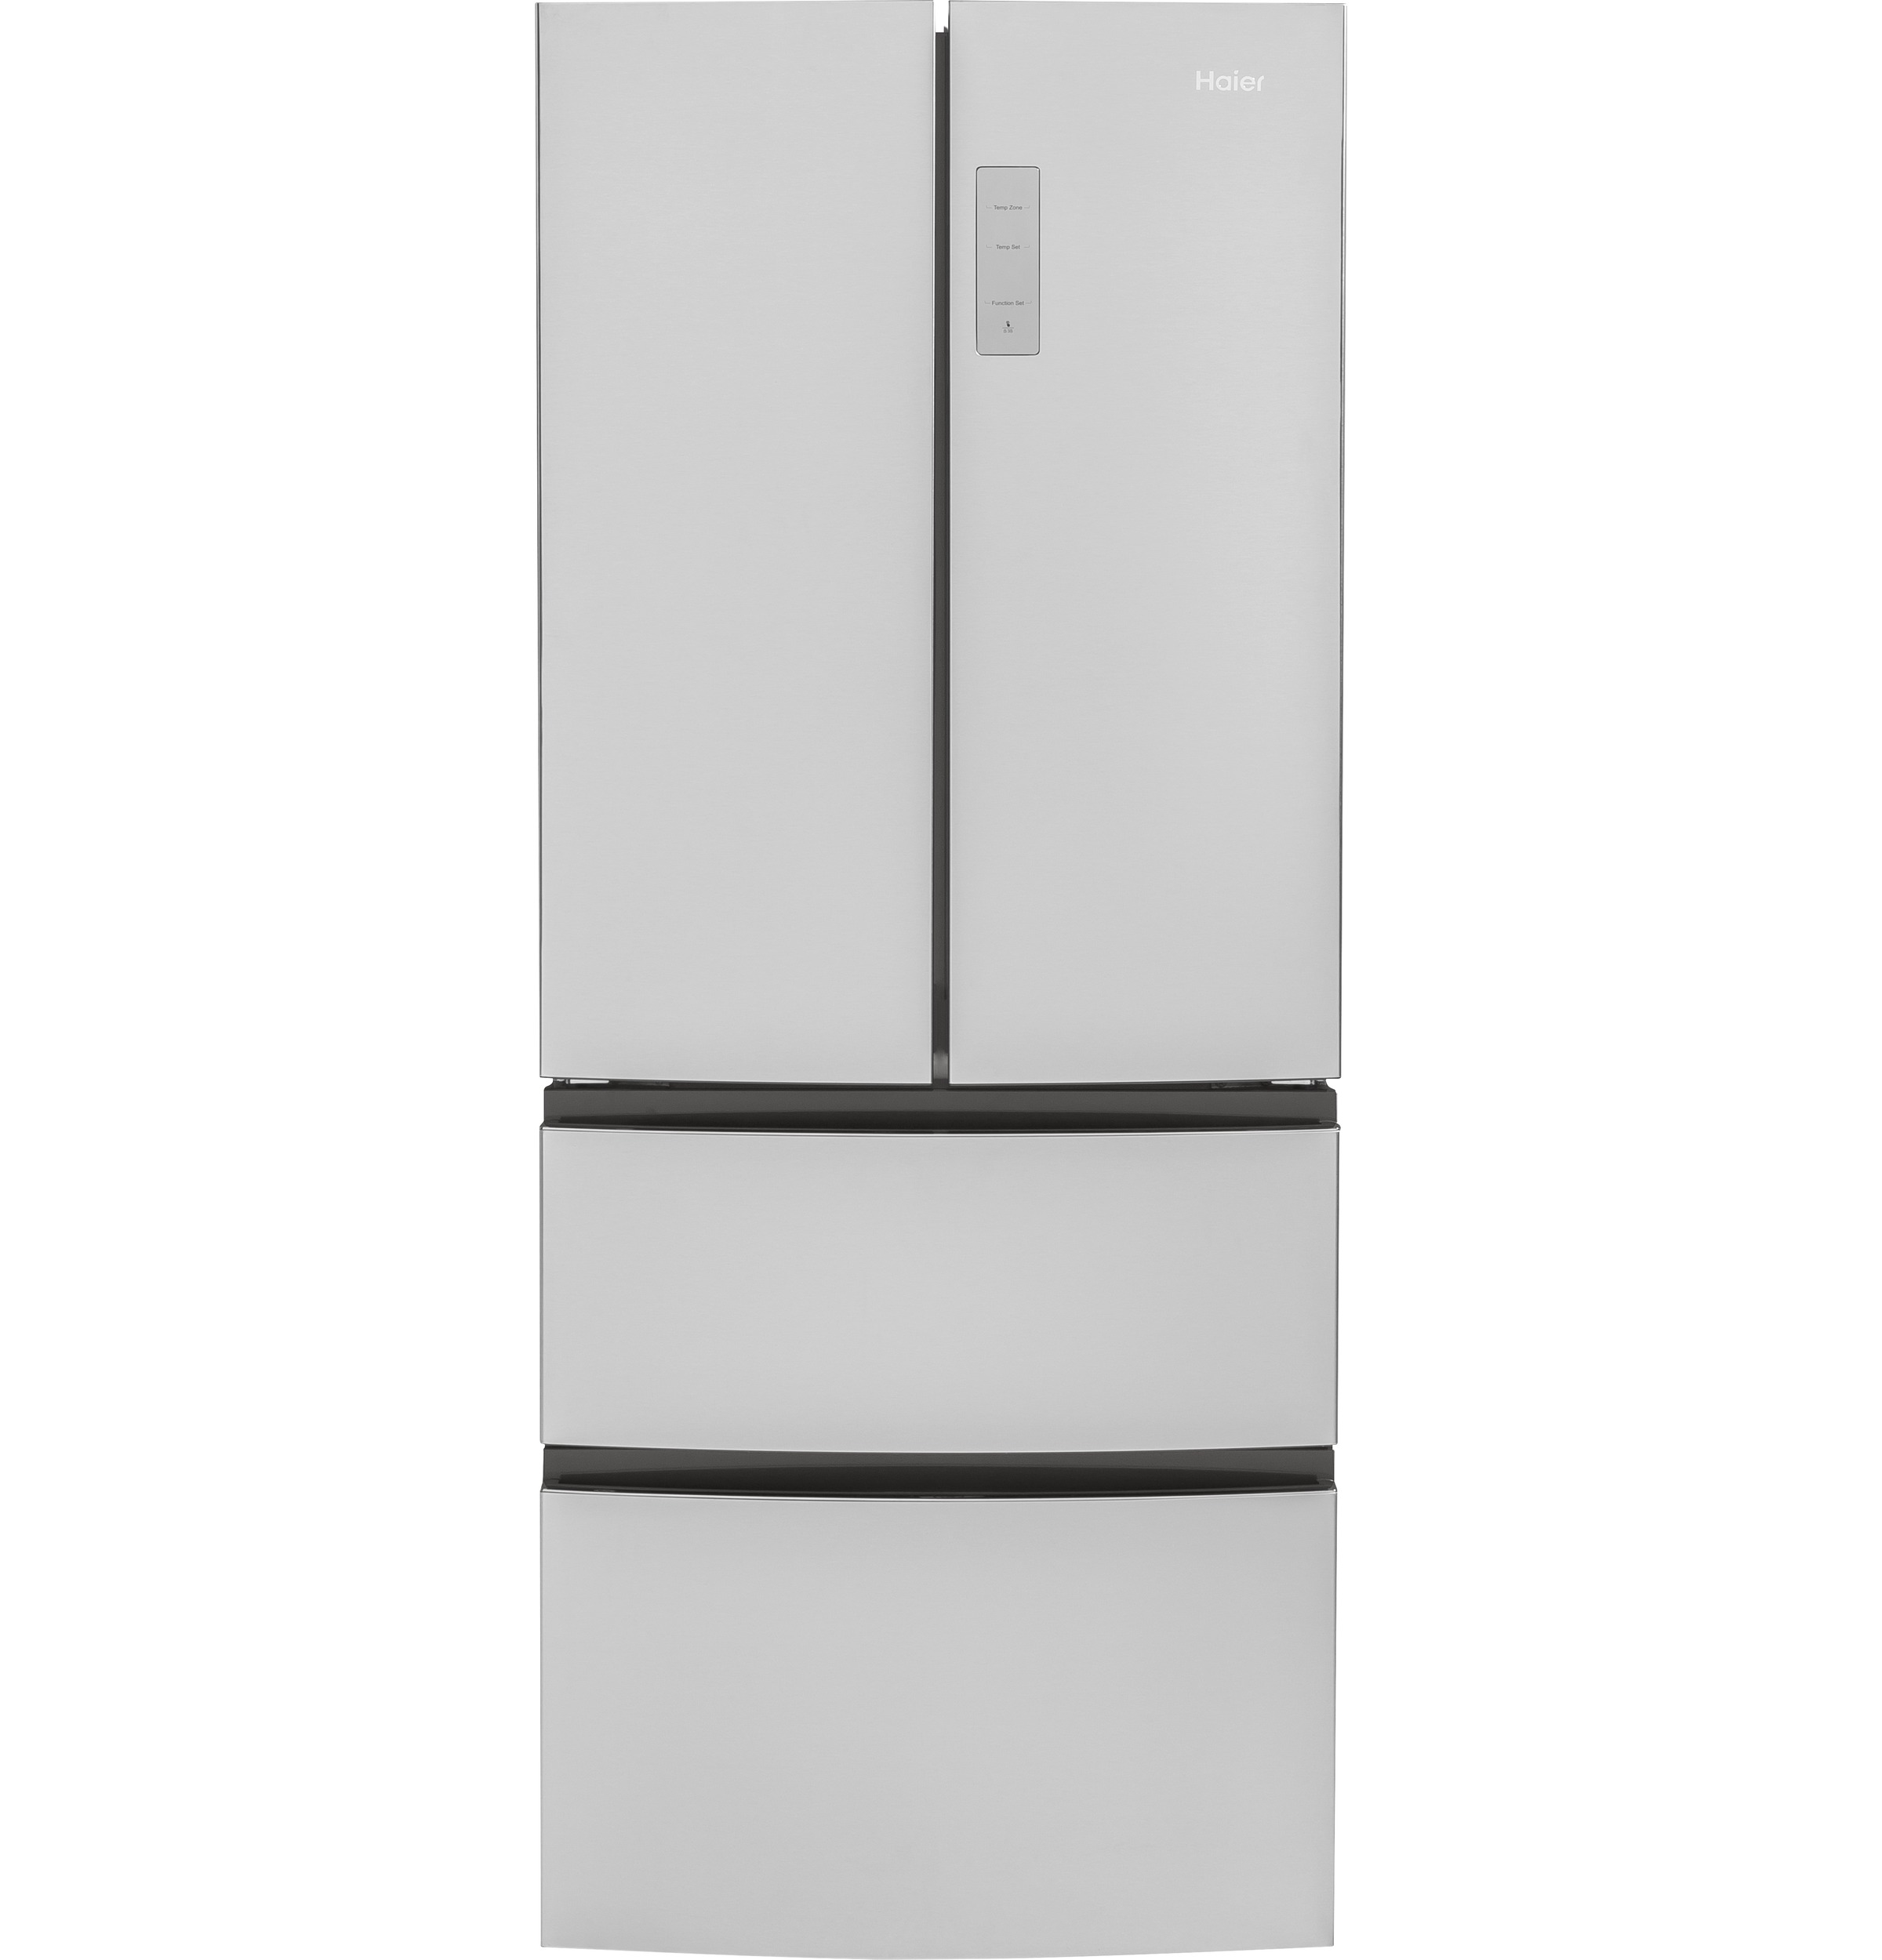 Haier 15.3 Cu. Ft. French Door Refrigerator